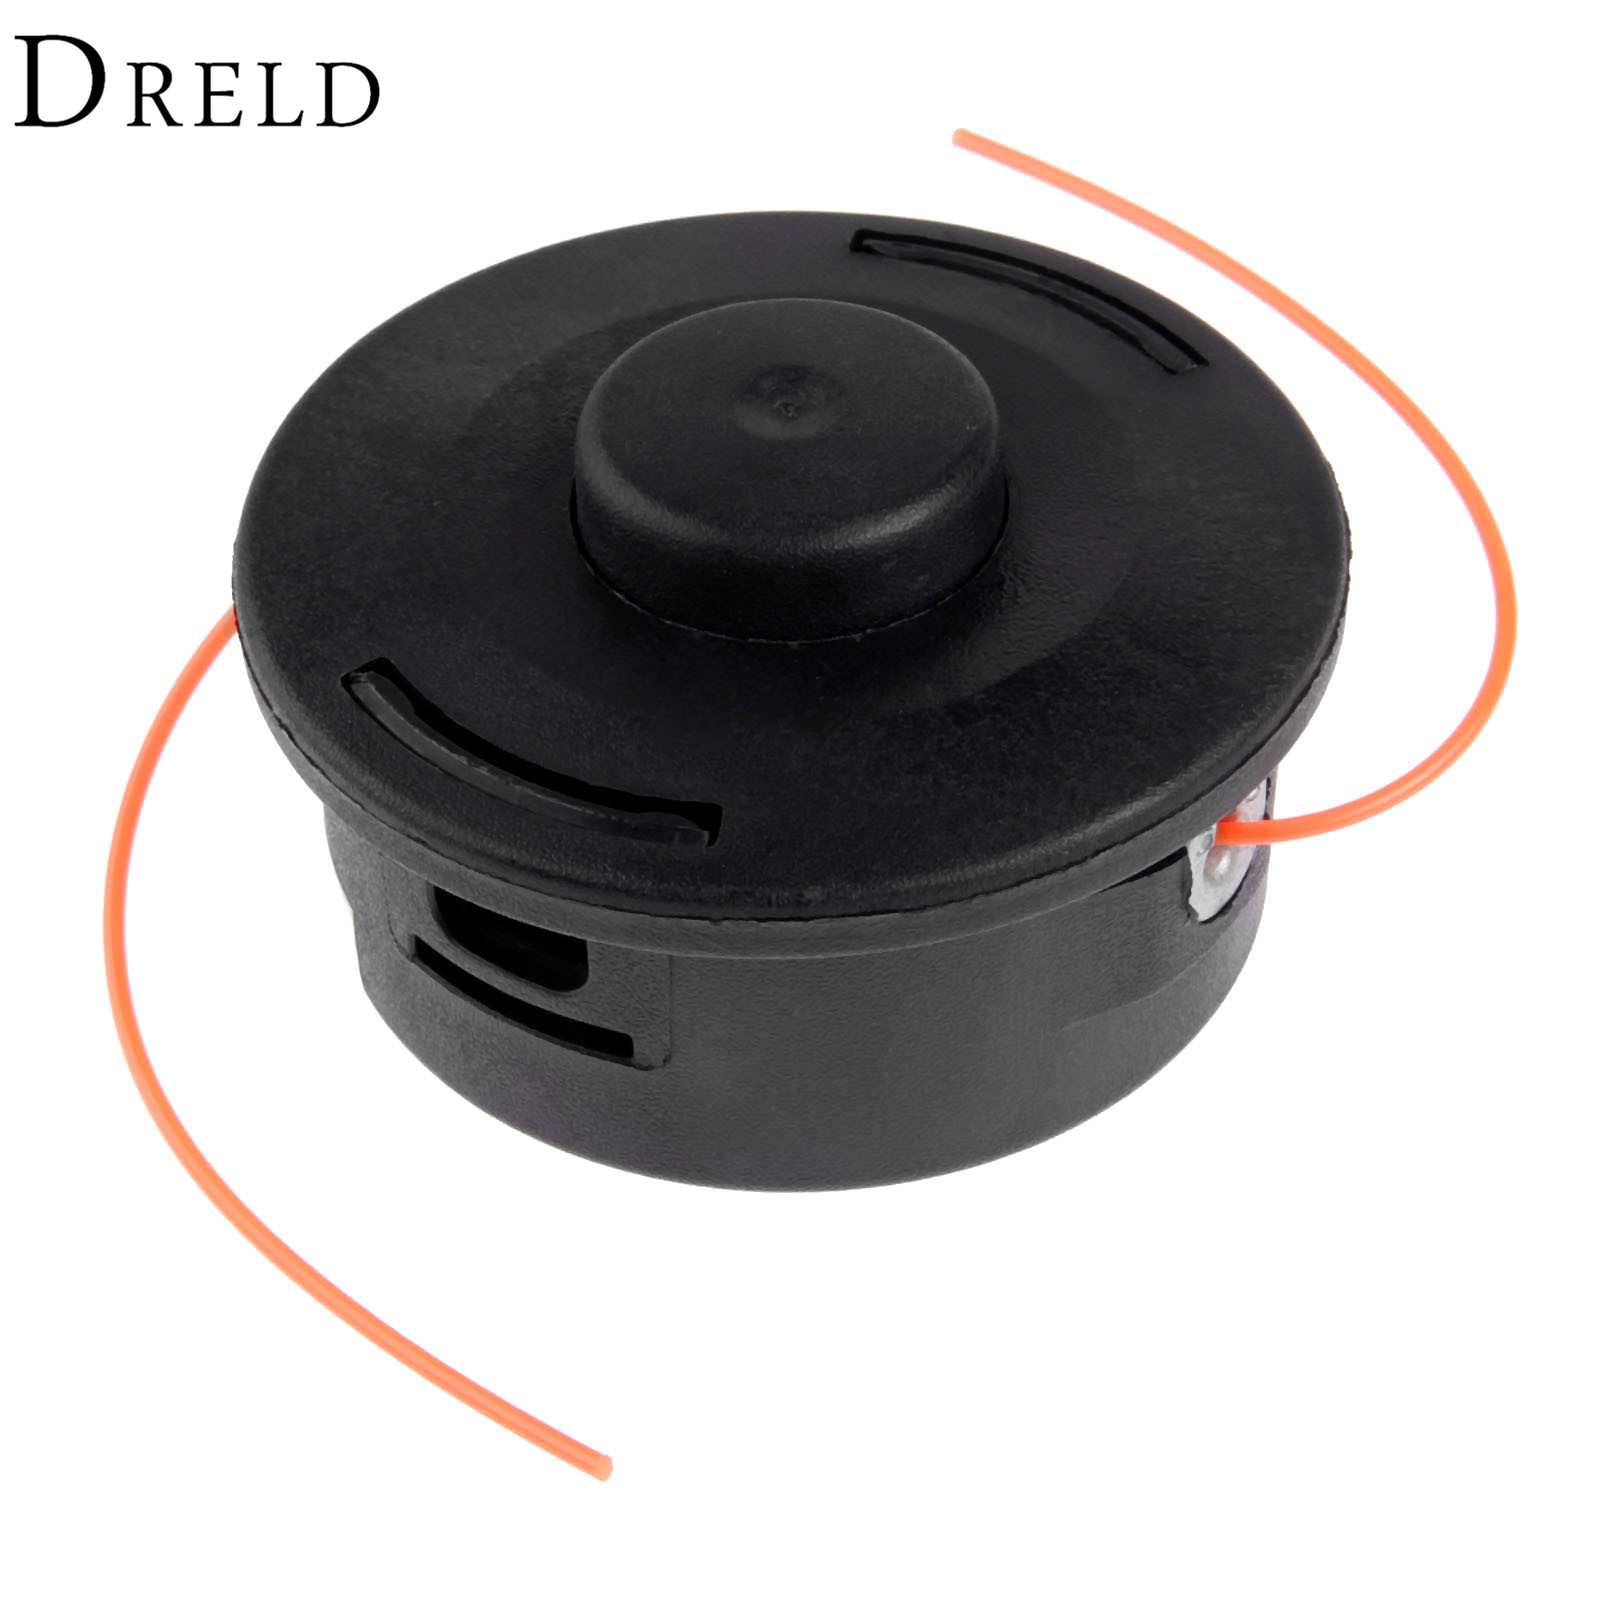 DRELD Double Line Bump Feed Trimmer Head M10*1.25 for STIHL FS80 FS81 FS85 FS86 FS87 FS100 FS106 Brushcutter Trimmer Lawn Mower 1pcs nylon line brush cutter head garden lawn mower bump grass brush trimmer head garden repalcement tools black